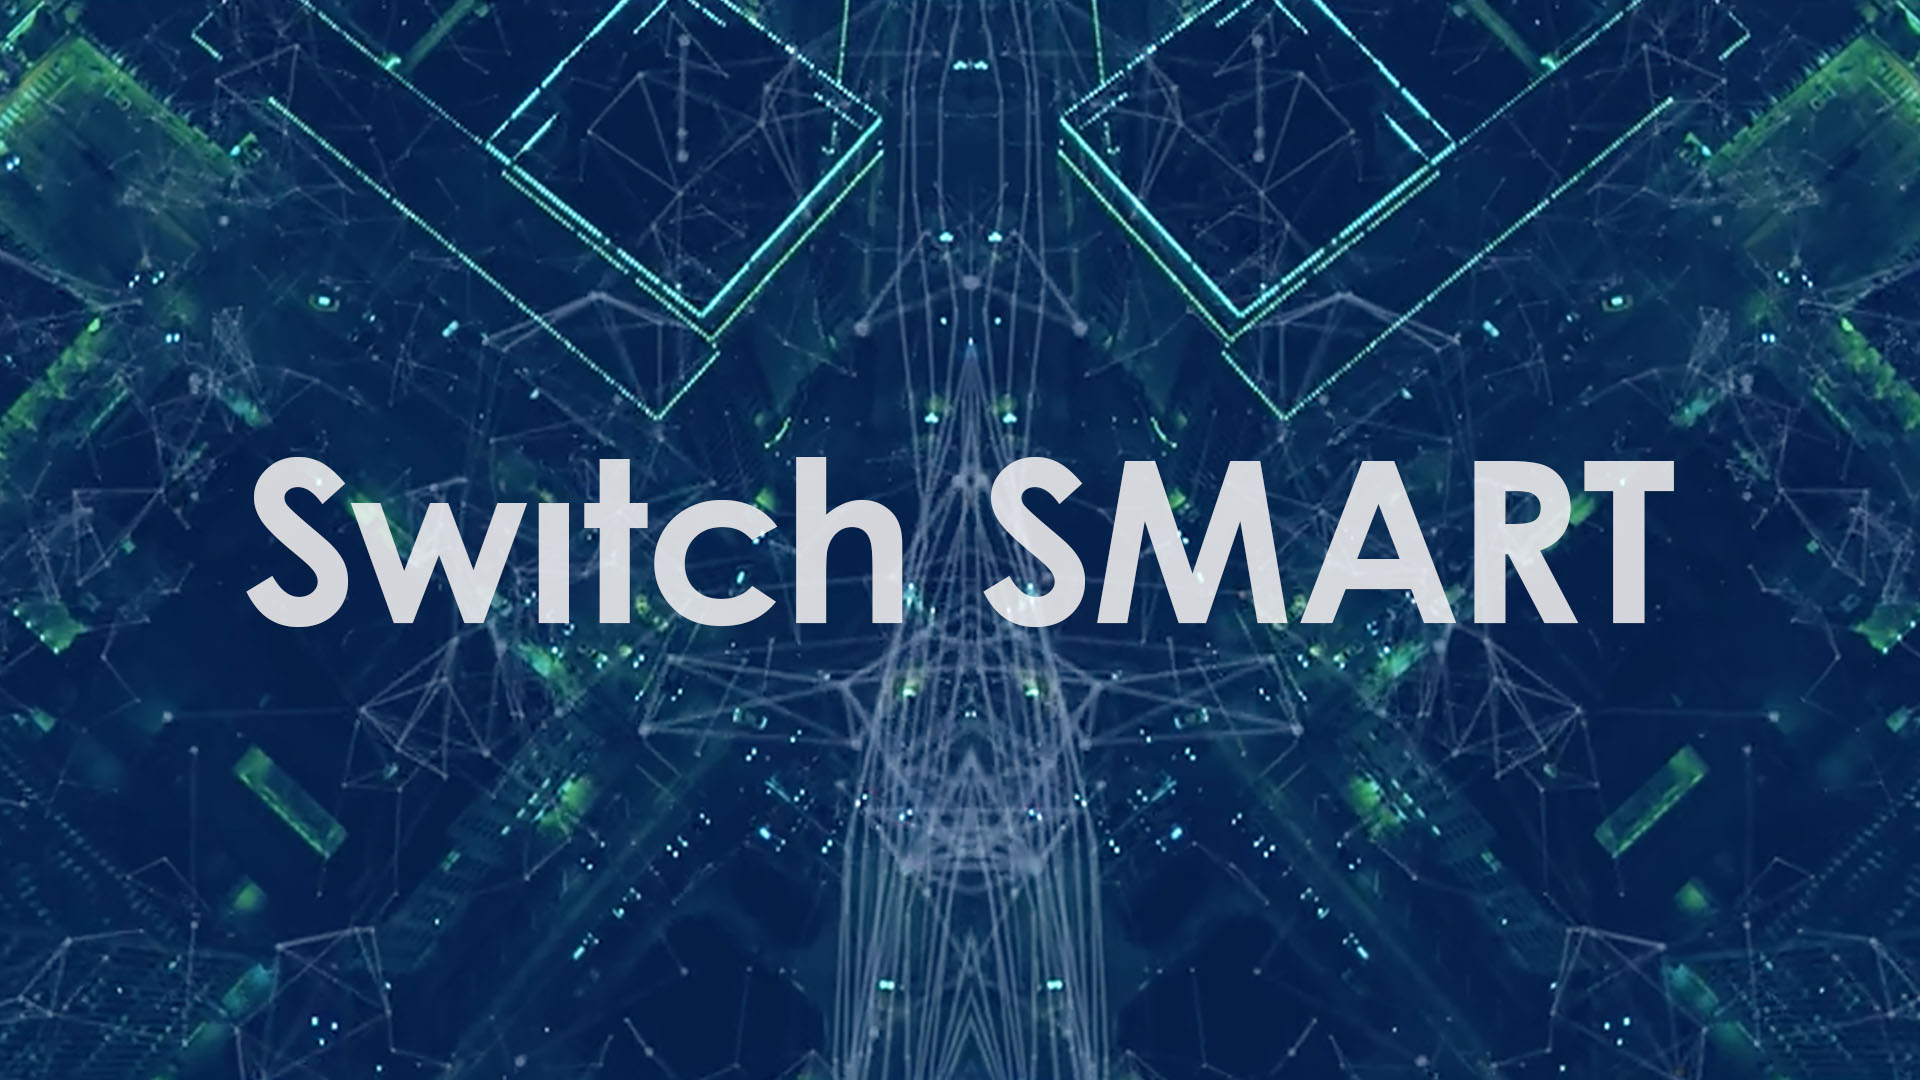 Betsy Fretwell Joins Switch As Senior Vice President Of Switch SMART, Company's New Smart City Division